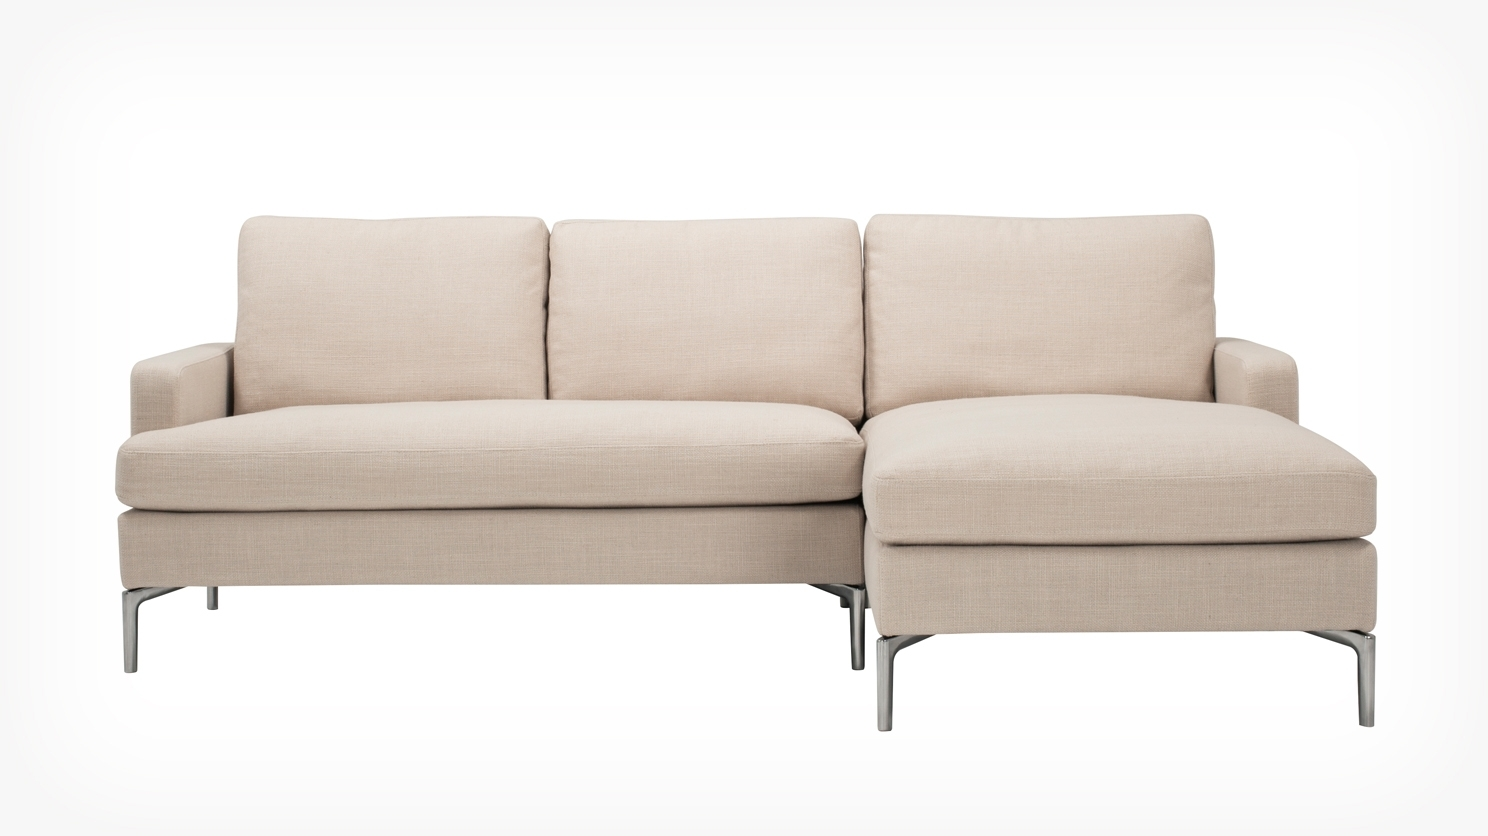 3 Pieces Small Sectional Beige Sofa With Chaise And Skinny Chrome Within Preferred Small Sofa Chaises (View 12 of 15)